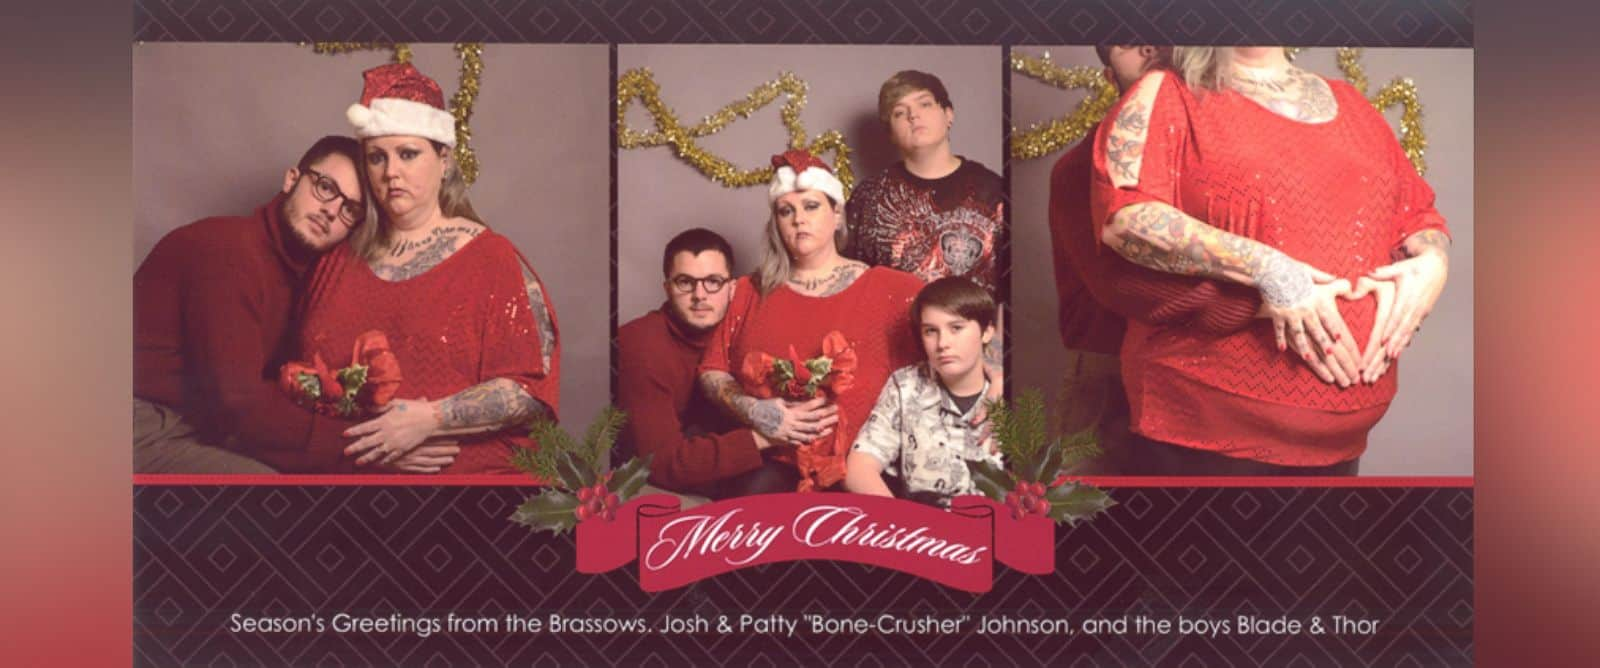 Michigan student hires fake family for christmas card prank michigan student hires fake family for christmas card prank awesomejelly m4hsunfo